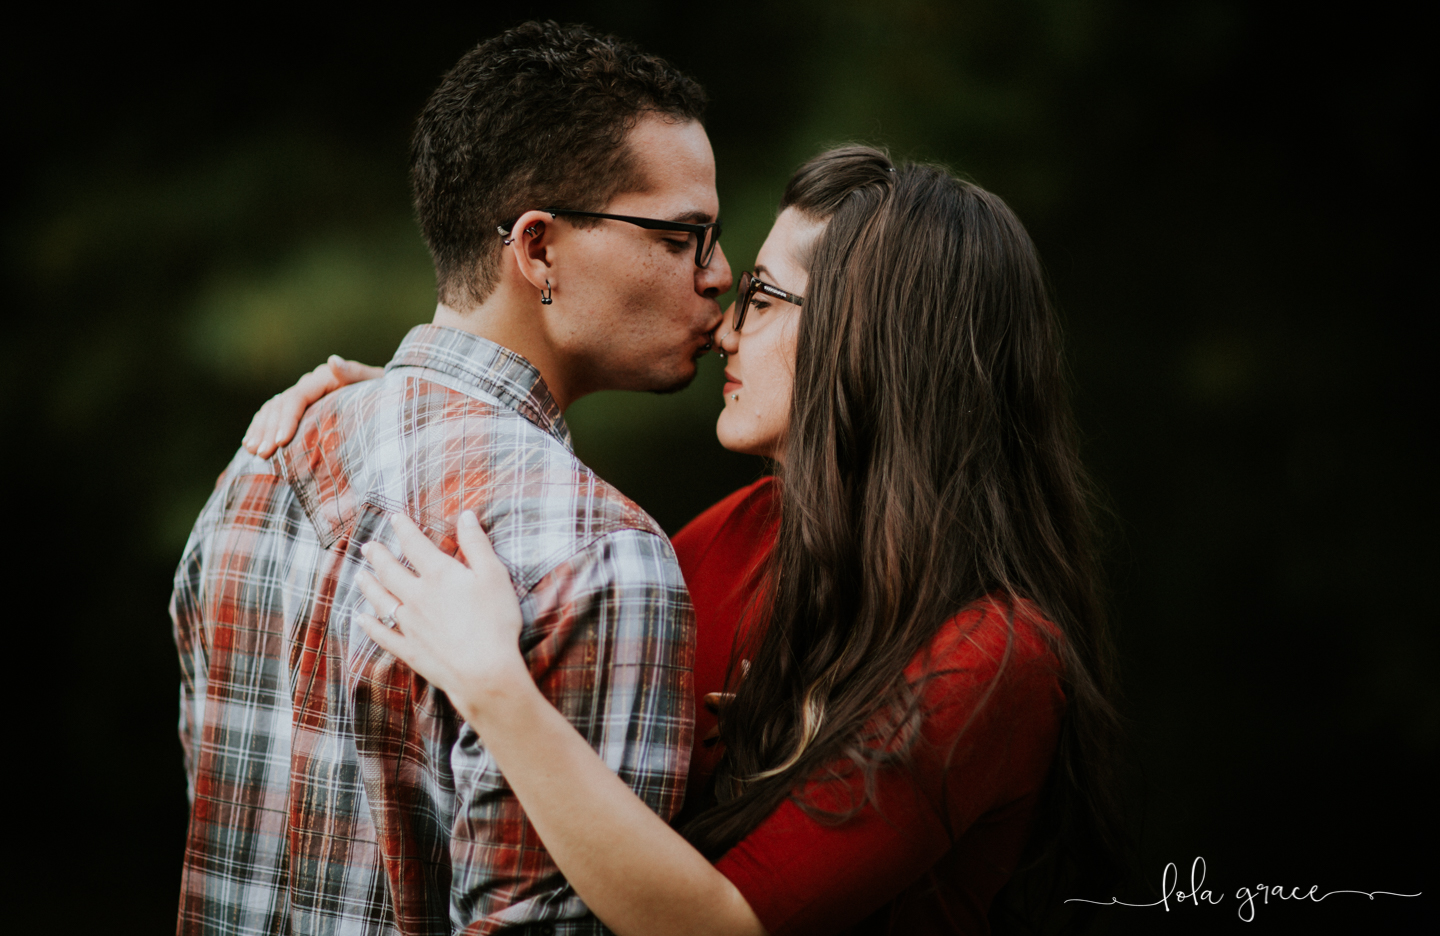 lola-grace-photography-chelsea-jesse-engagement-photos-12.jpg